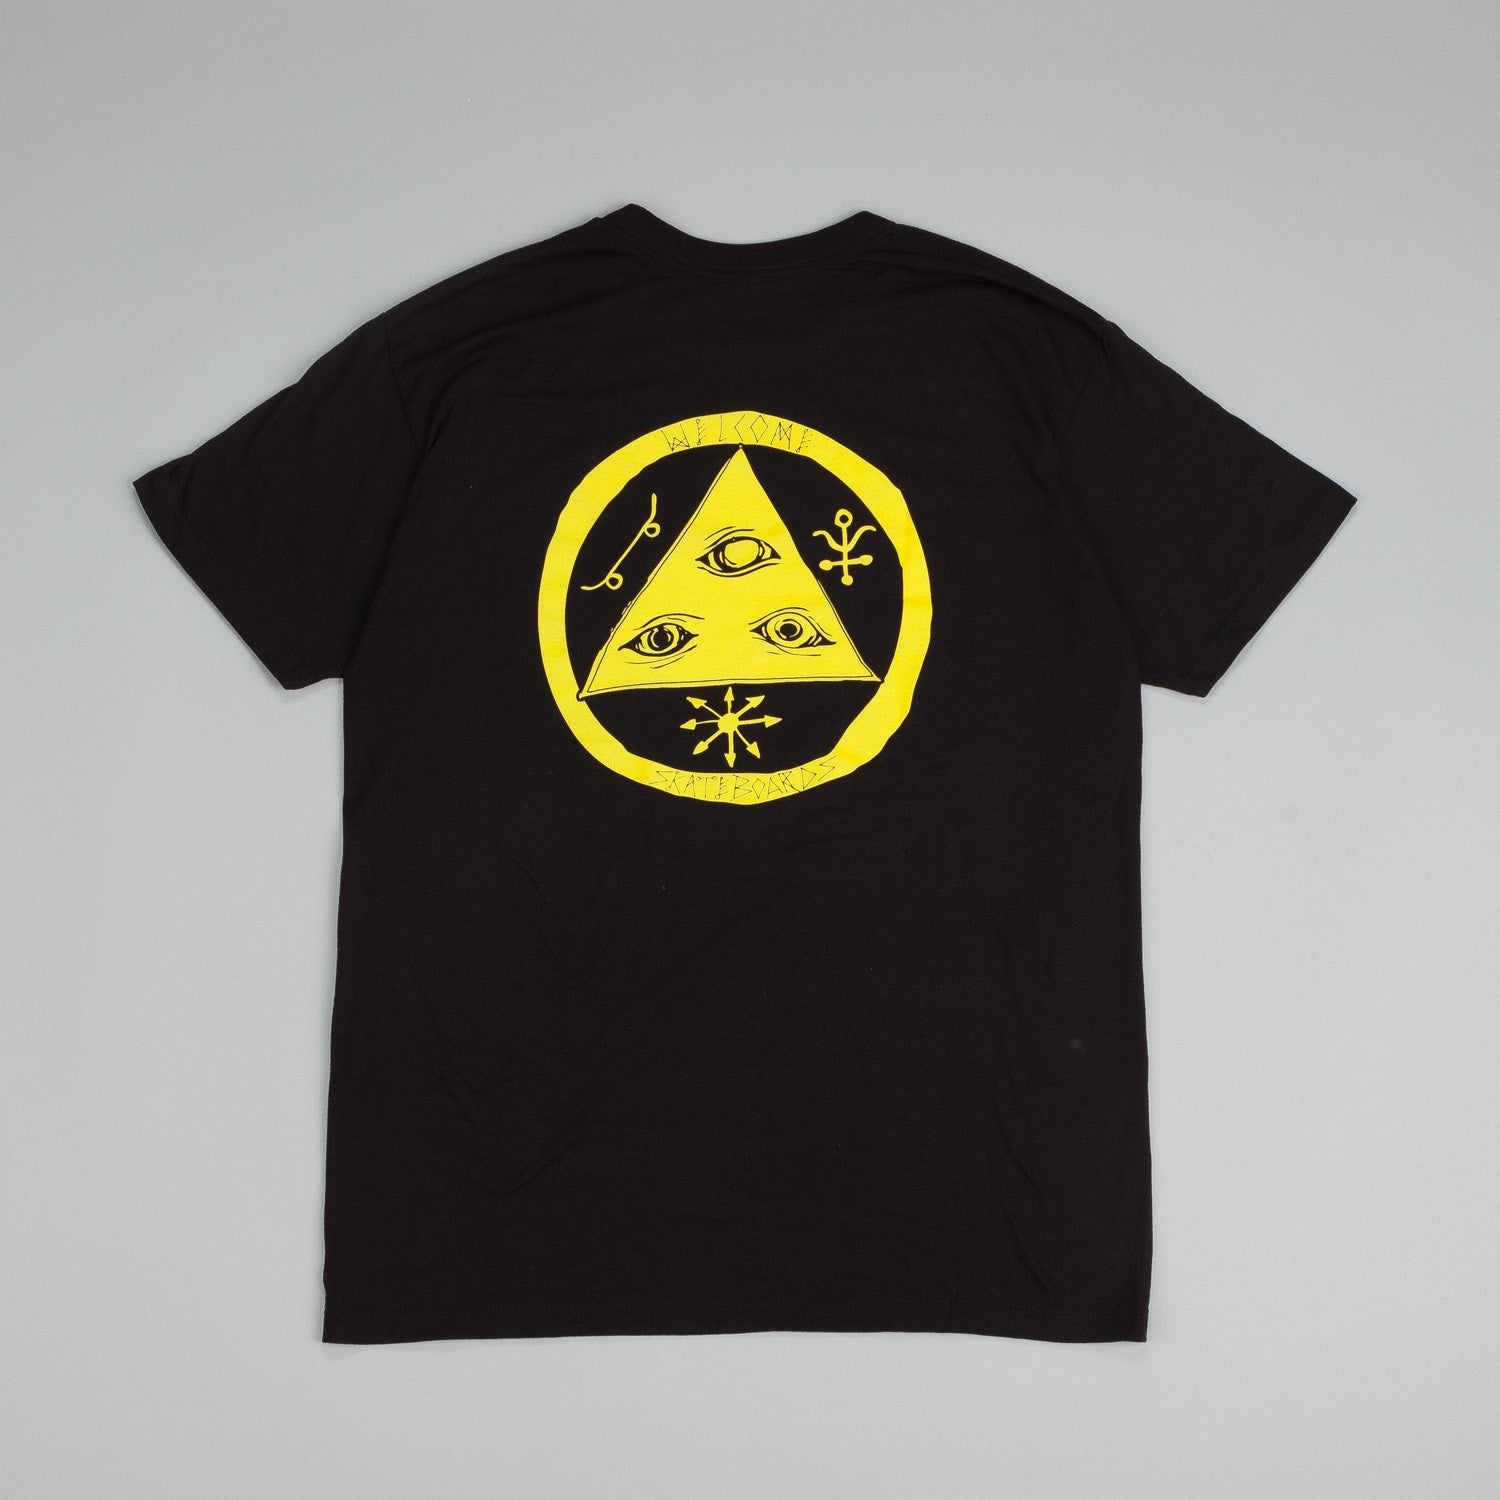 Welcome Talisman Discharge T Shirt Black / Yellow